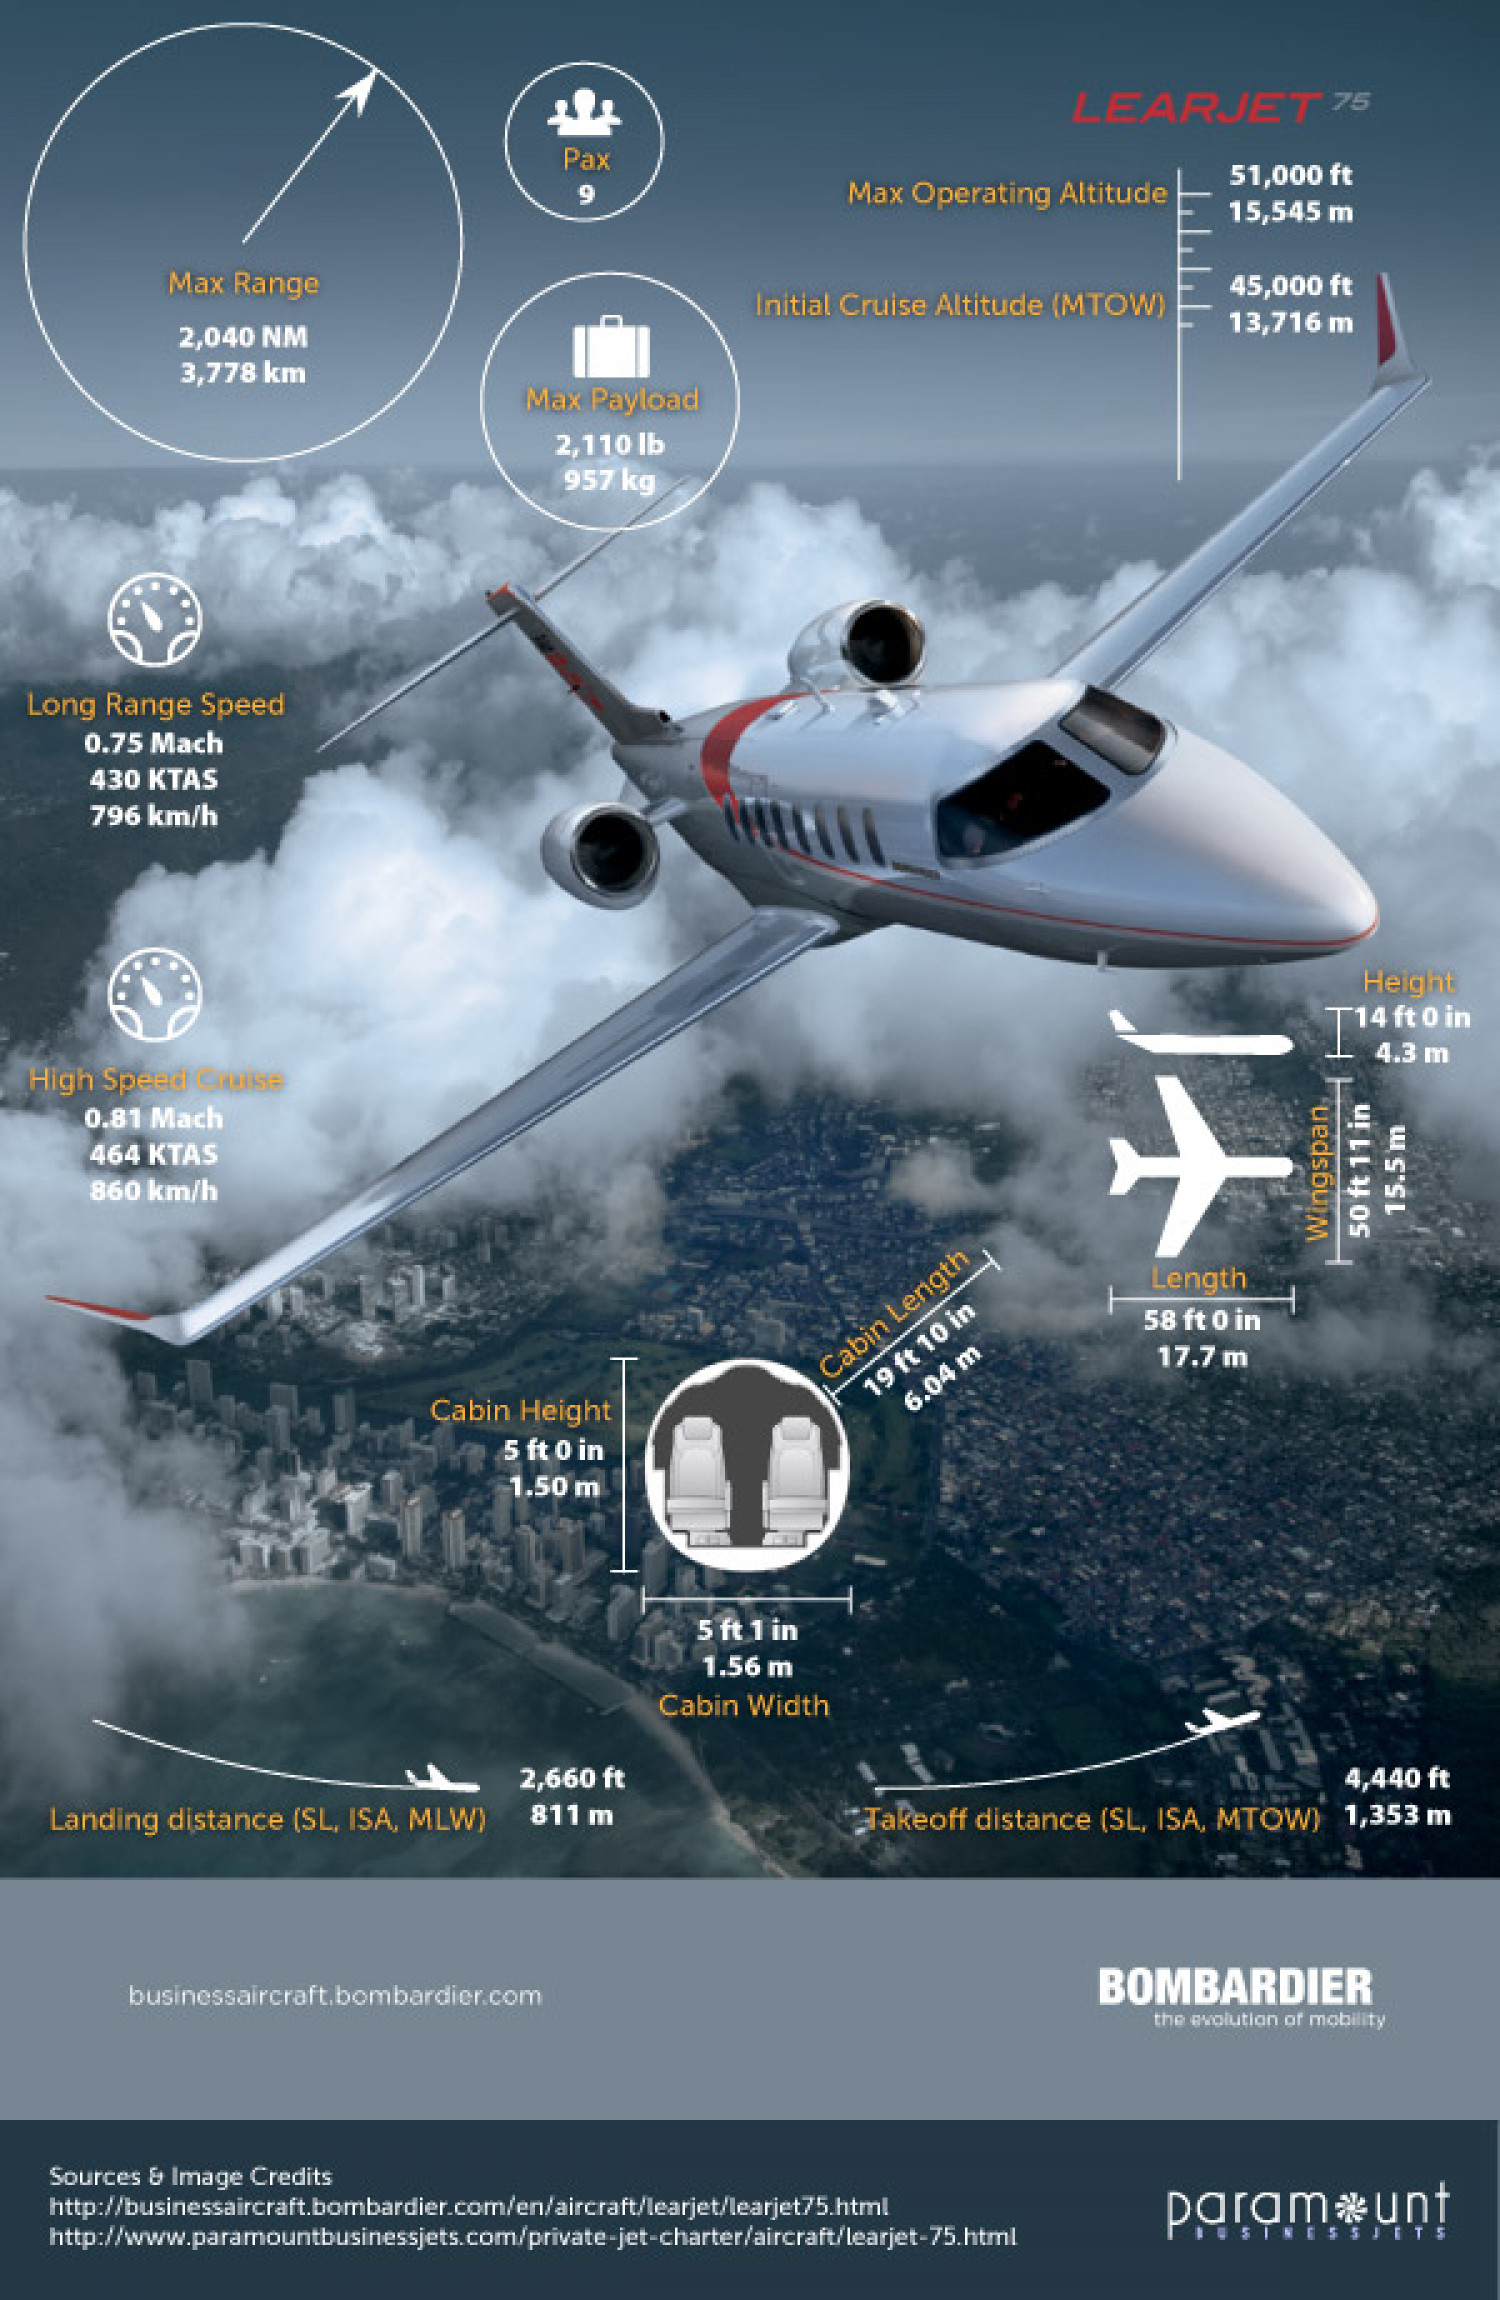 Learjet 75 Key Specifications Infographic